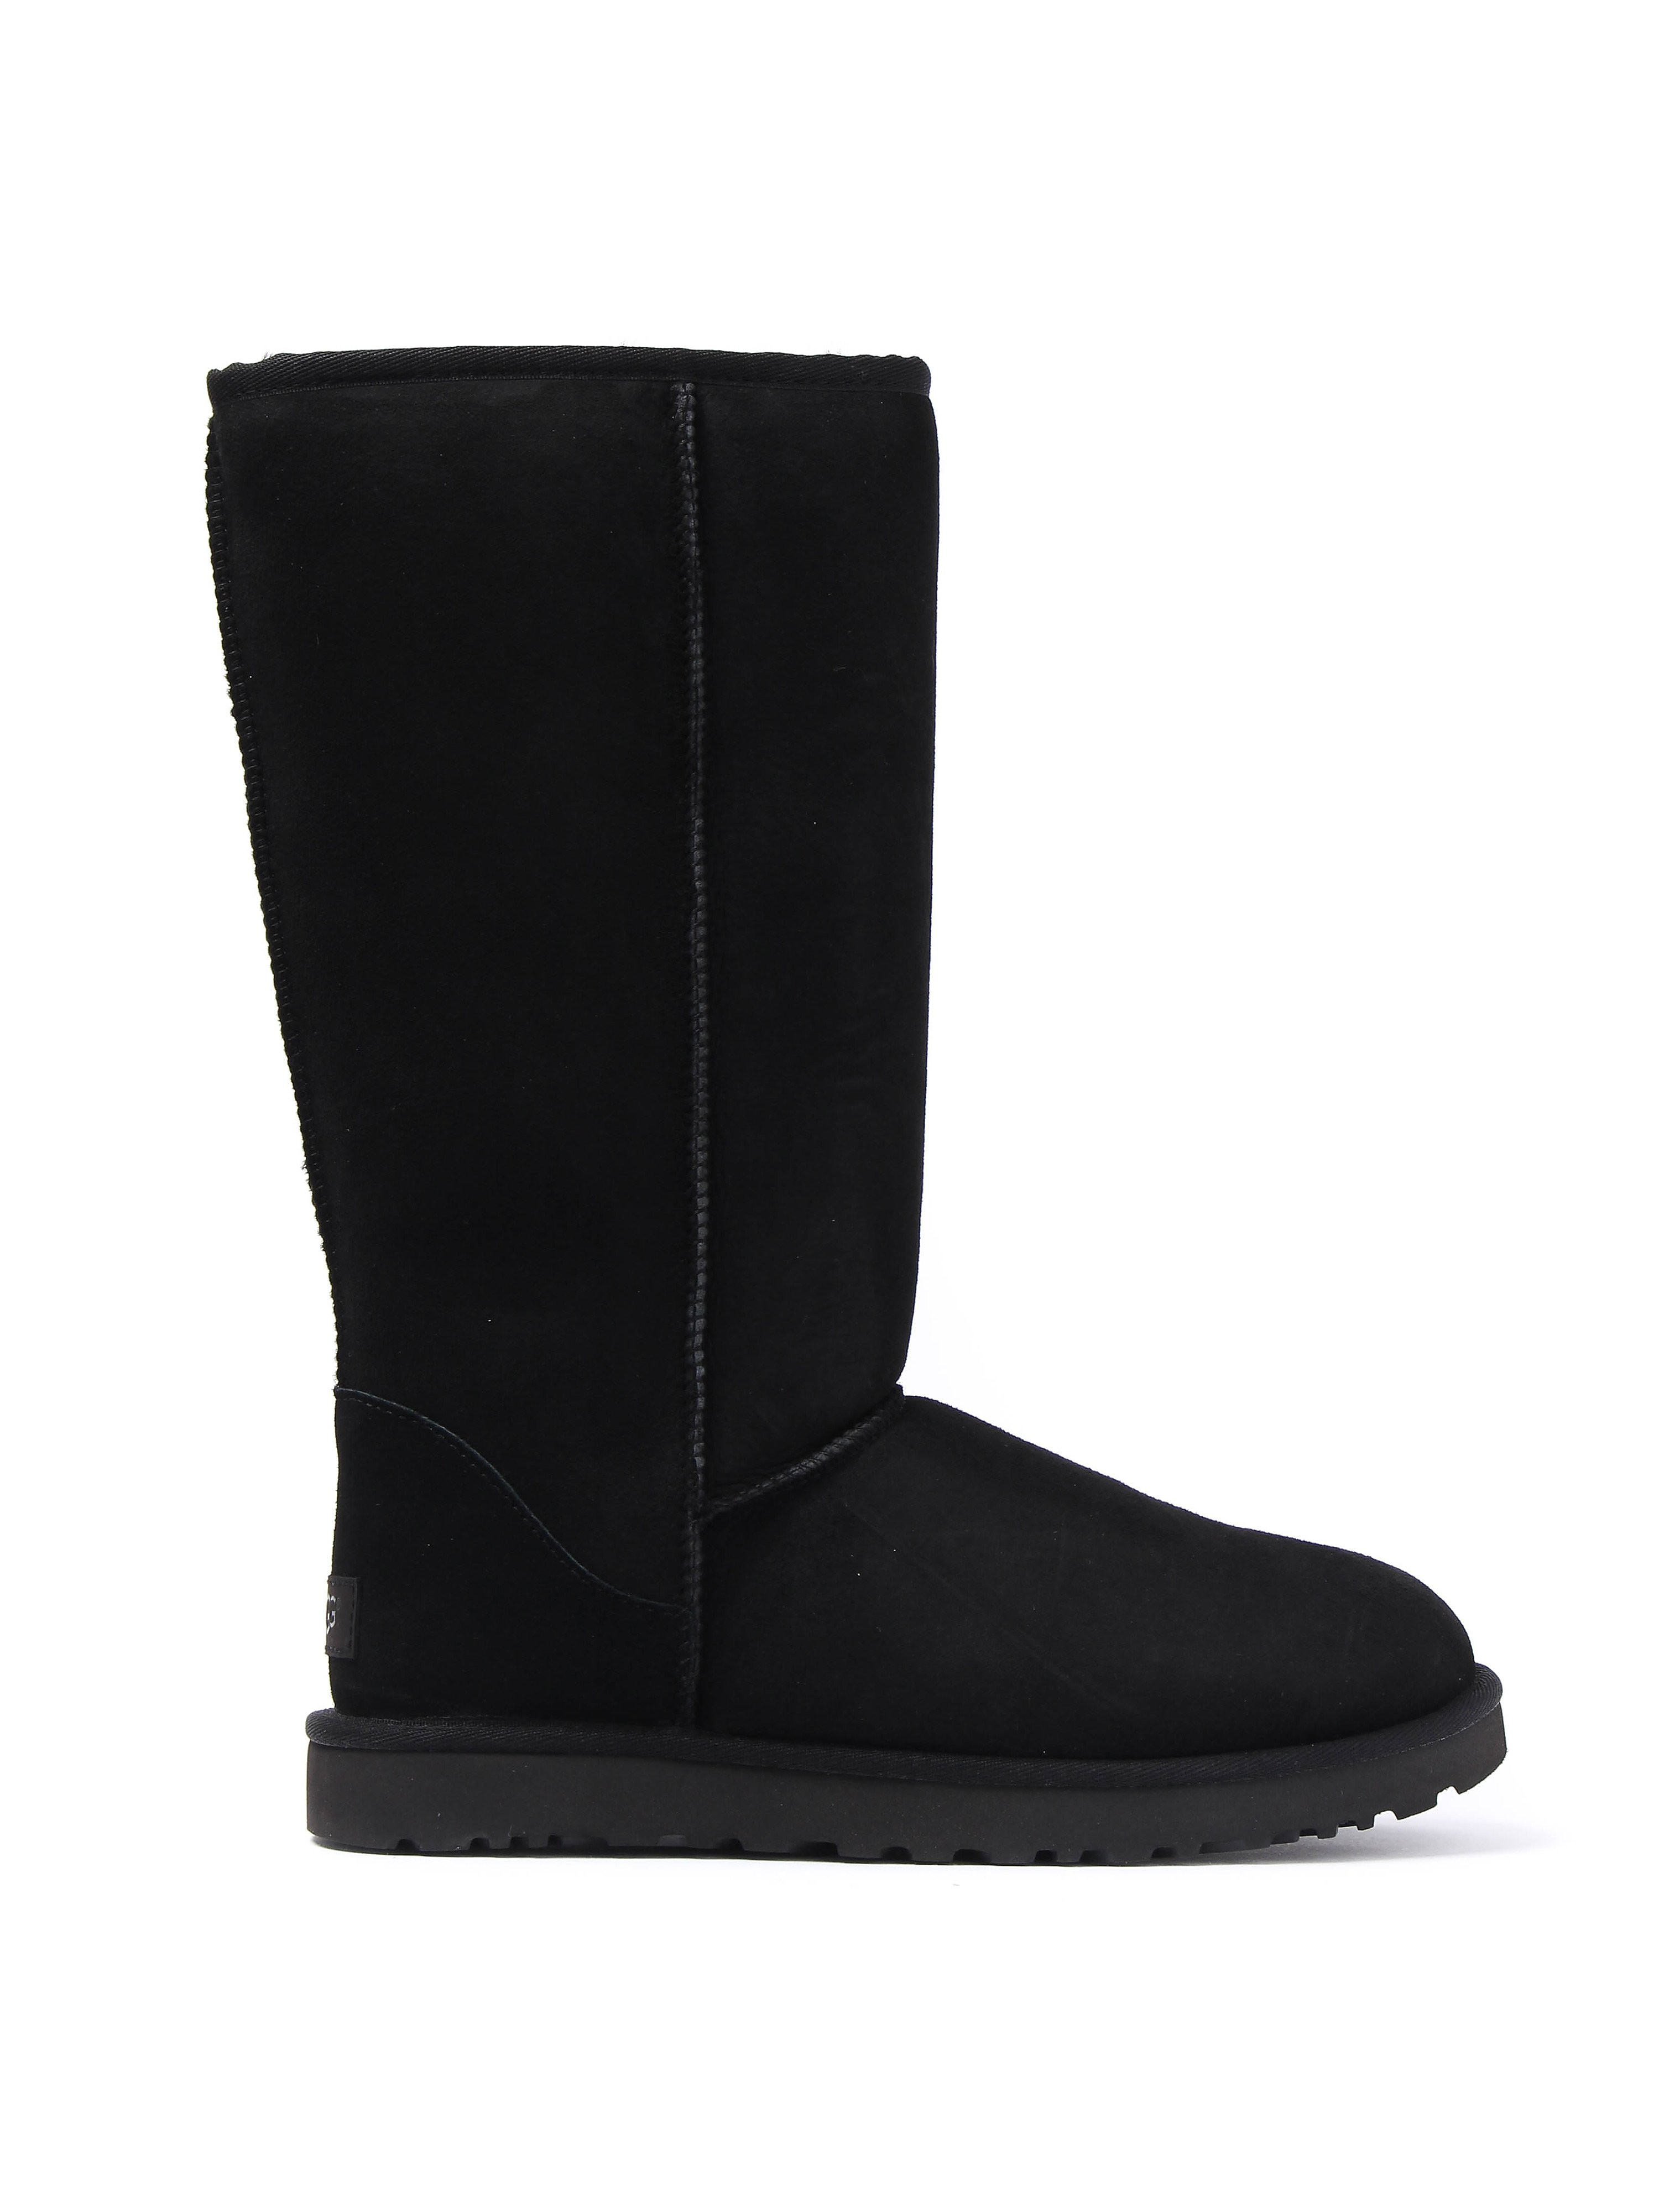 UGG Women's Classic Tall II Sheepskin Boots - Black